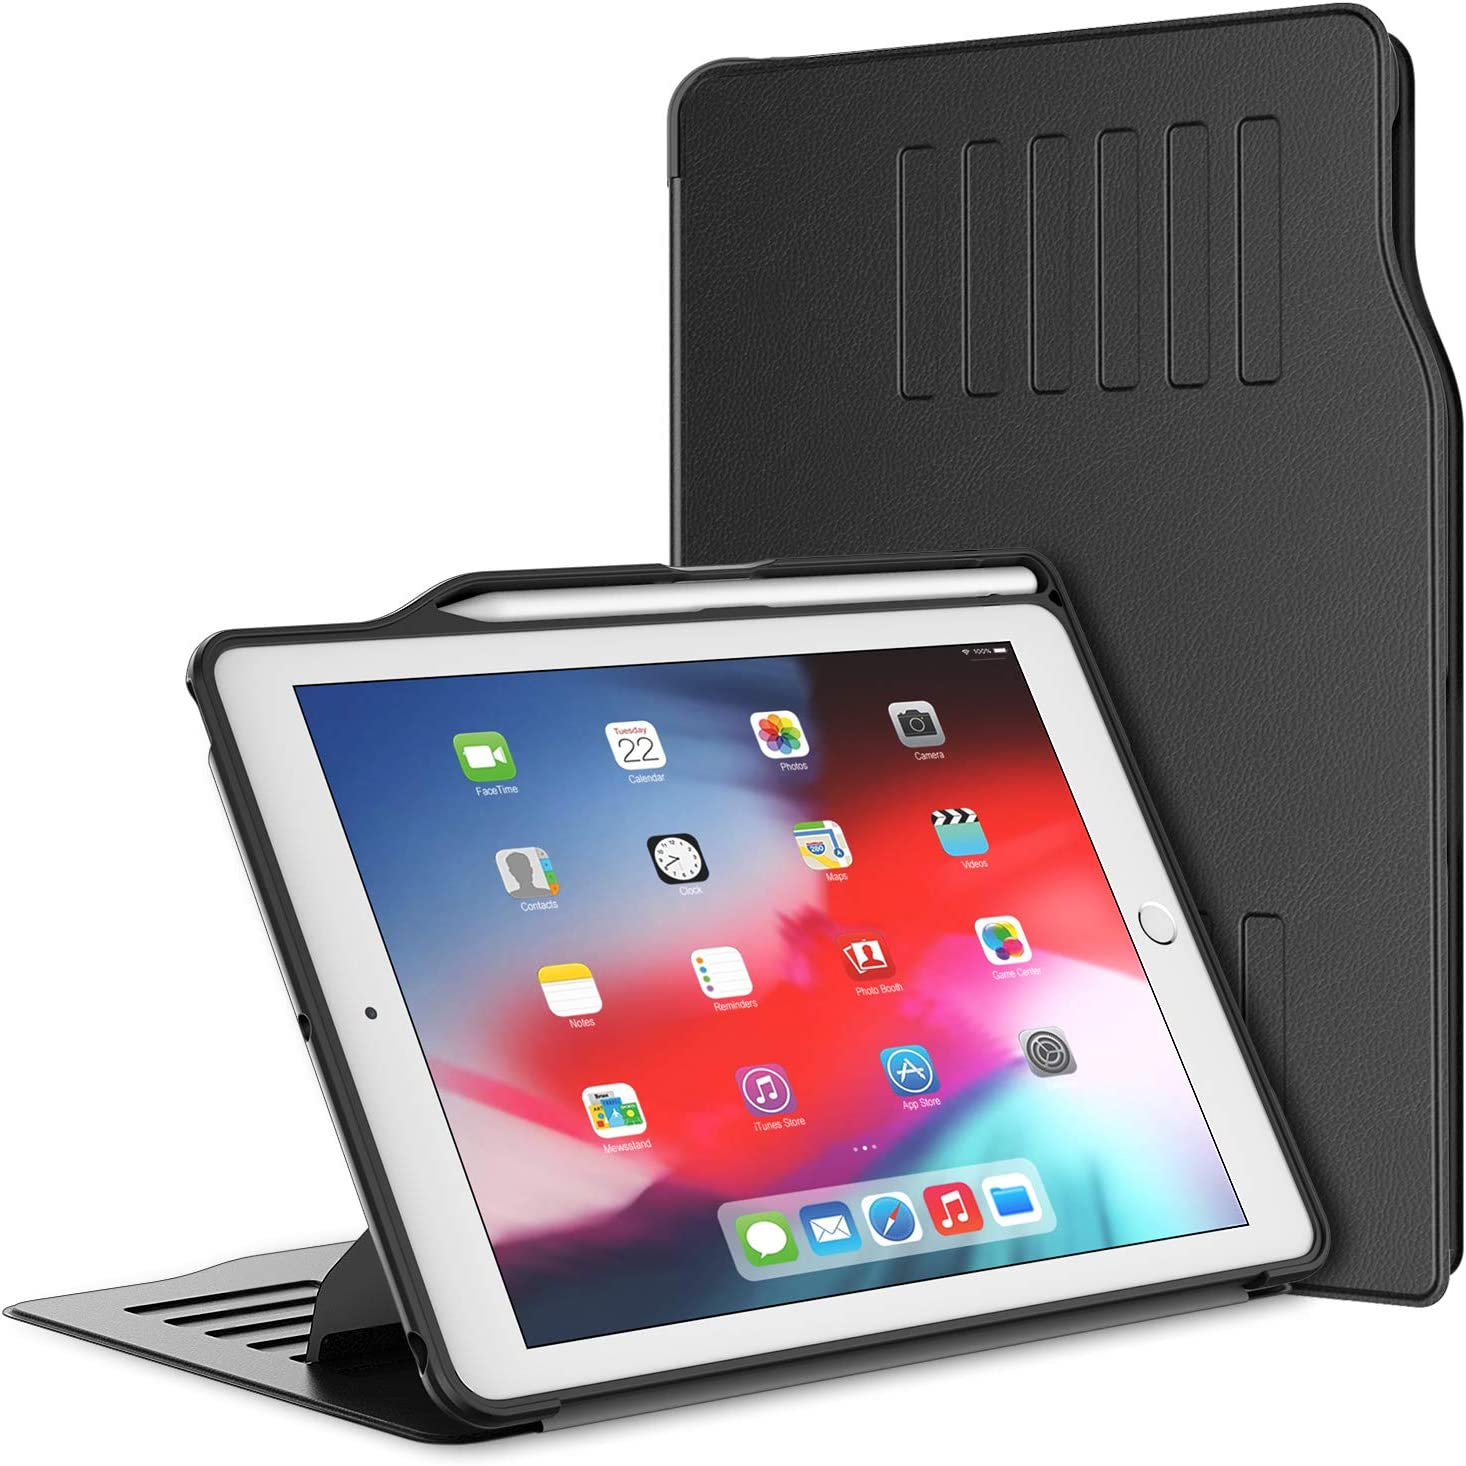 JETech Case for iPad 9.7-Inch (2018/2017 Model, 6th/5th Generation) with Pencil Holder, Highly Protective, Shock Absorption, Multiple Angles, Black